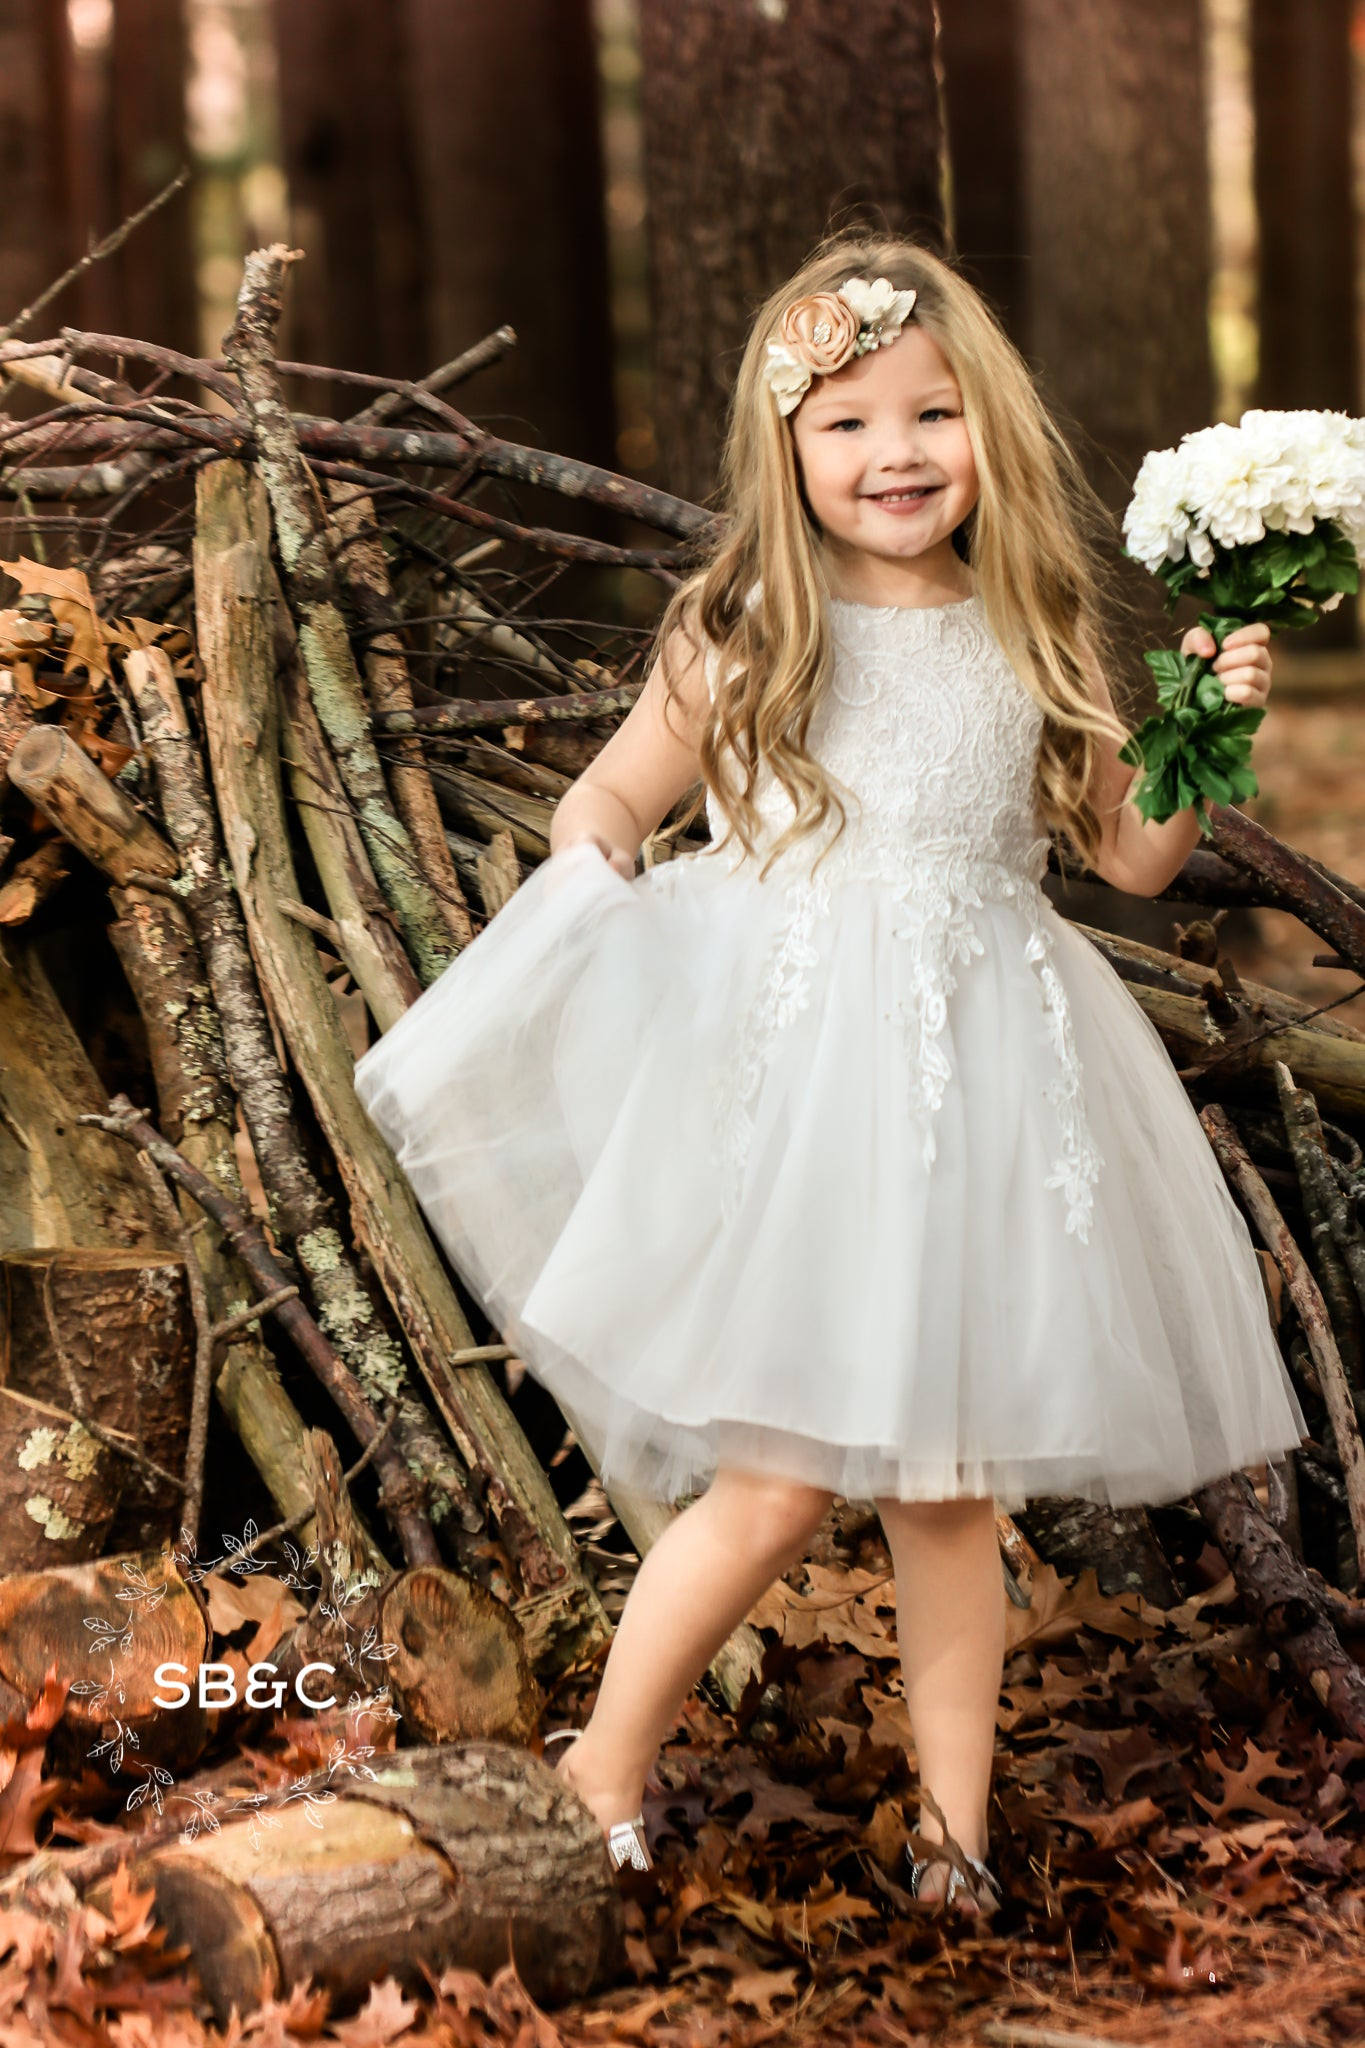 fbe1da01230 Madison Flower Girl Dress in White-Vintage-Boho-Lace-Rustic ...